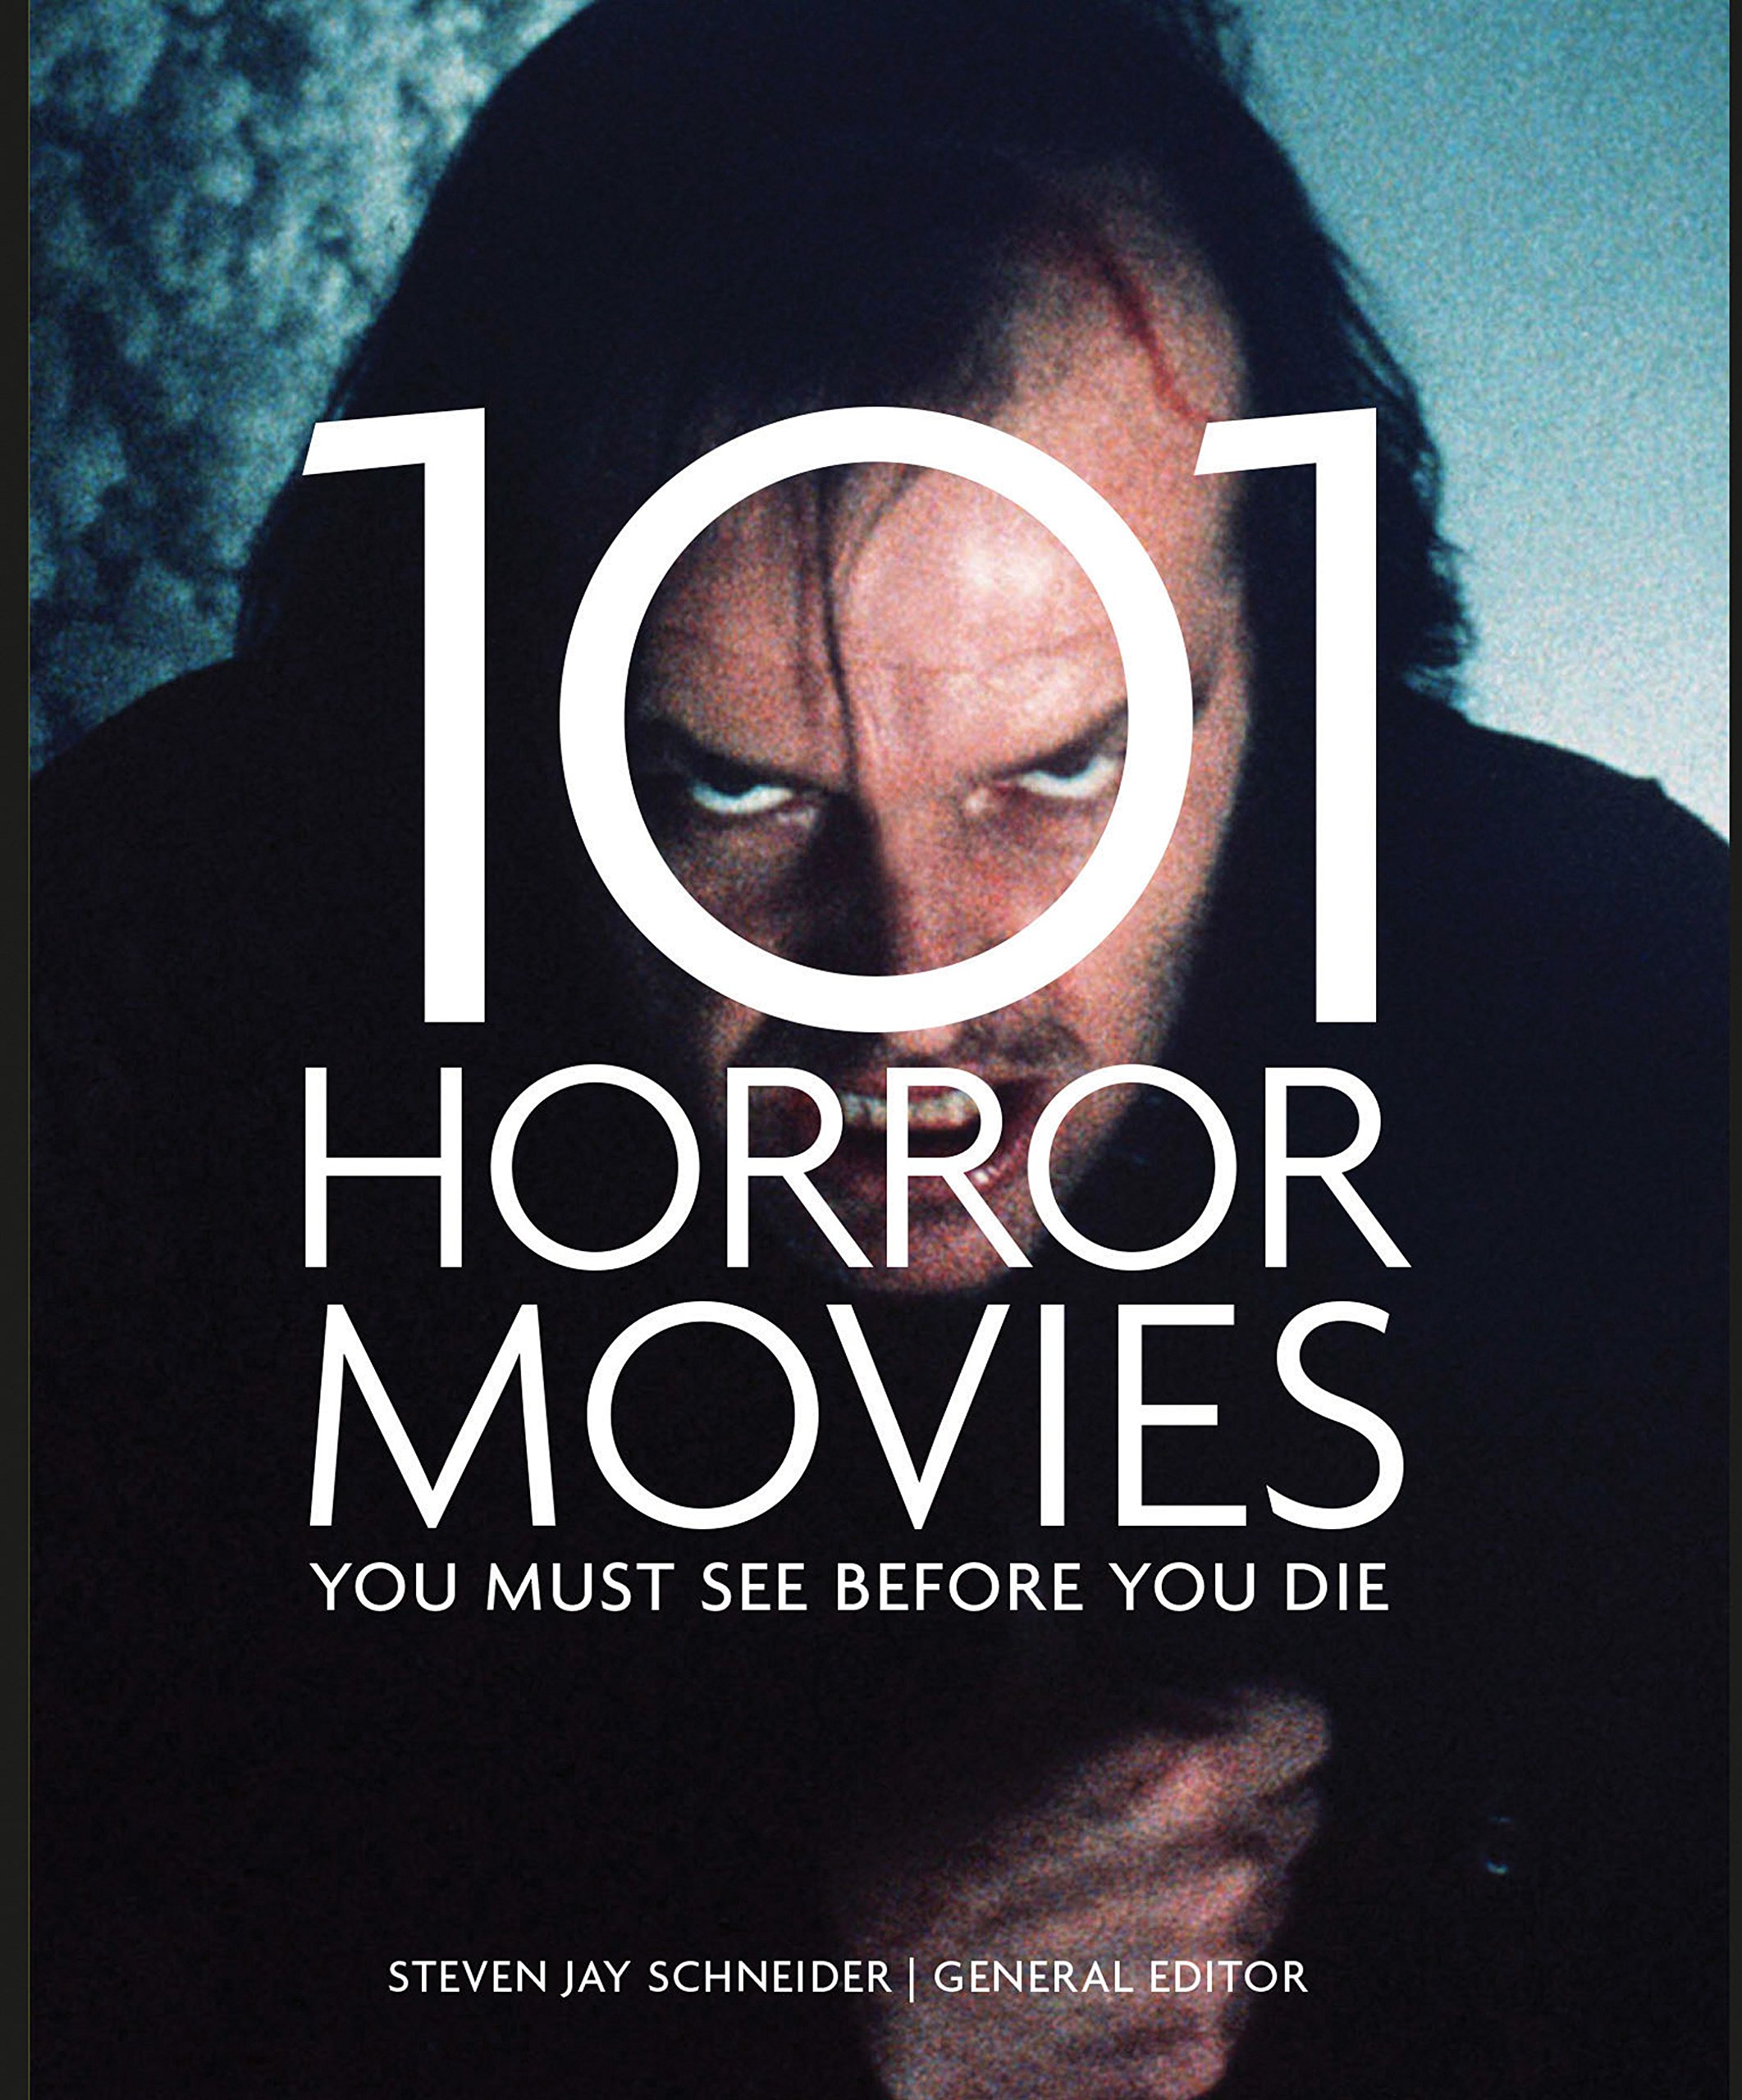 Amazon Com 101 Horror Movies You Must See Before You Die 9781845436568 Schneider Steven Jay Books Nightmare may be the content creator that is mainly focused on, but he is not the only one that involved in content on this sub. 101 horror movies you must see before